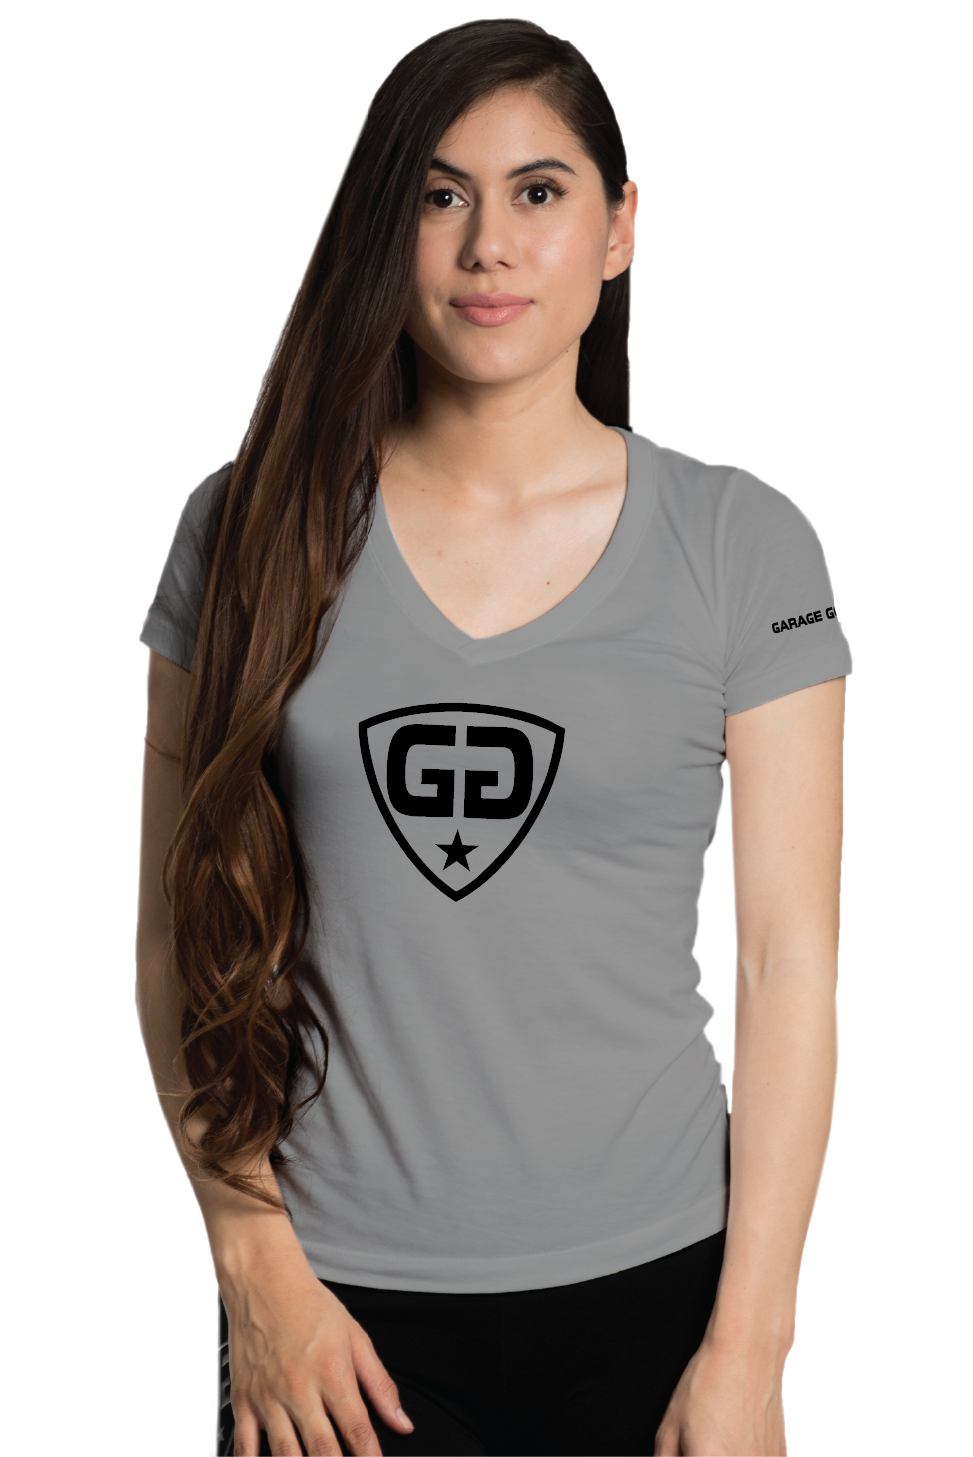 W gg center shield gray